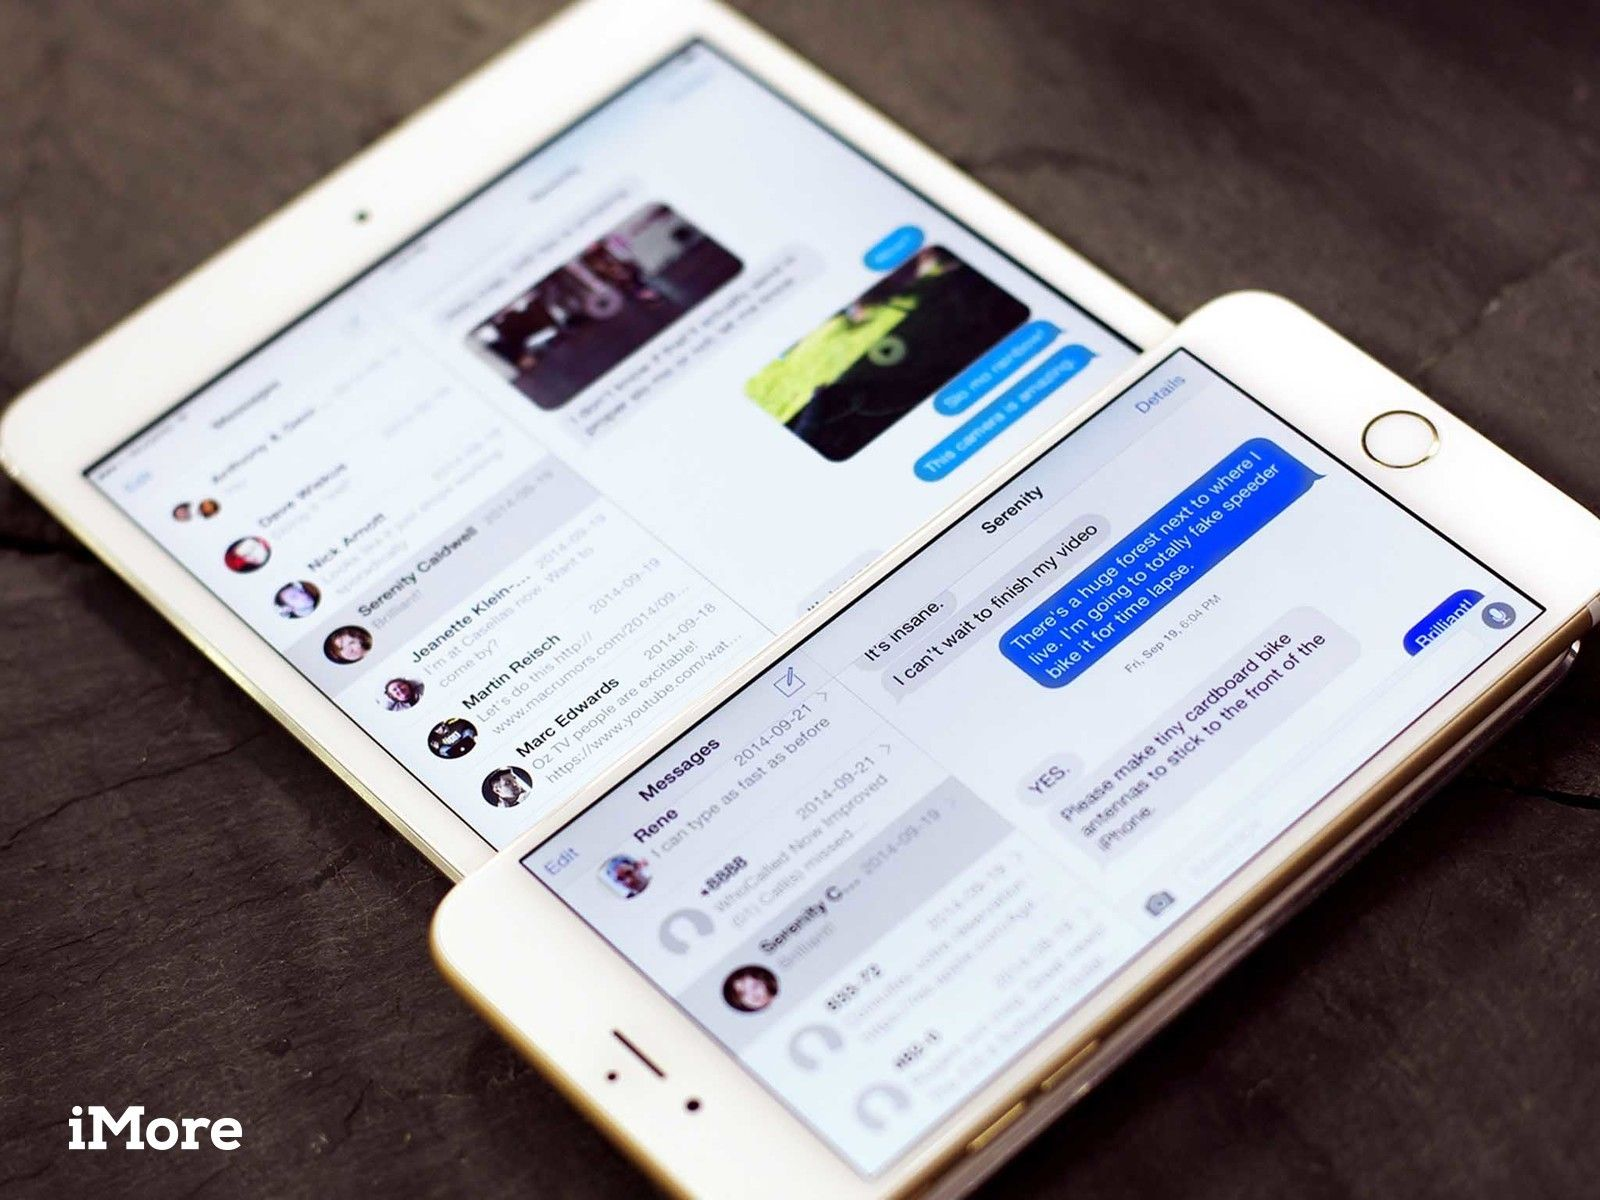 1c1200a38c191856312a47e56318e9a8 - How To Get Text Messages On My Ipad And Iphone